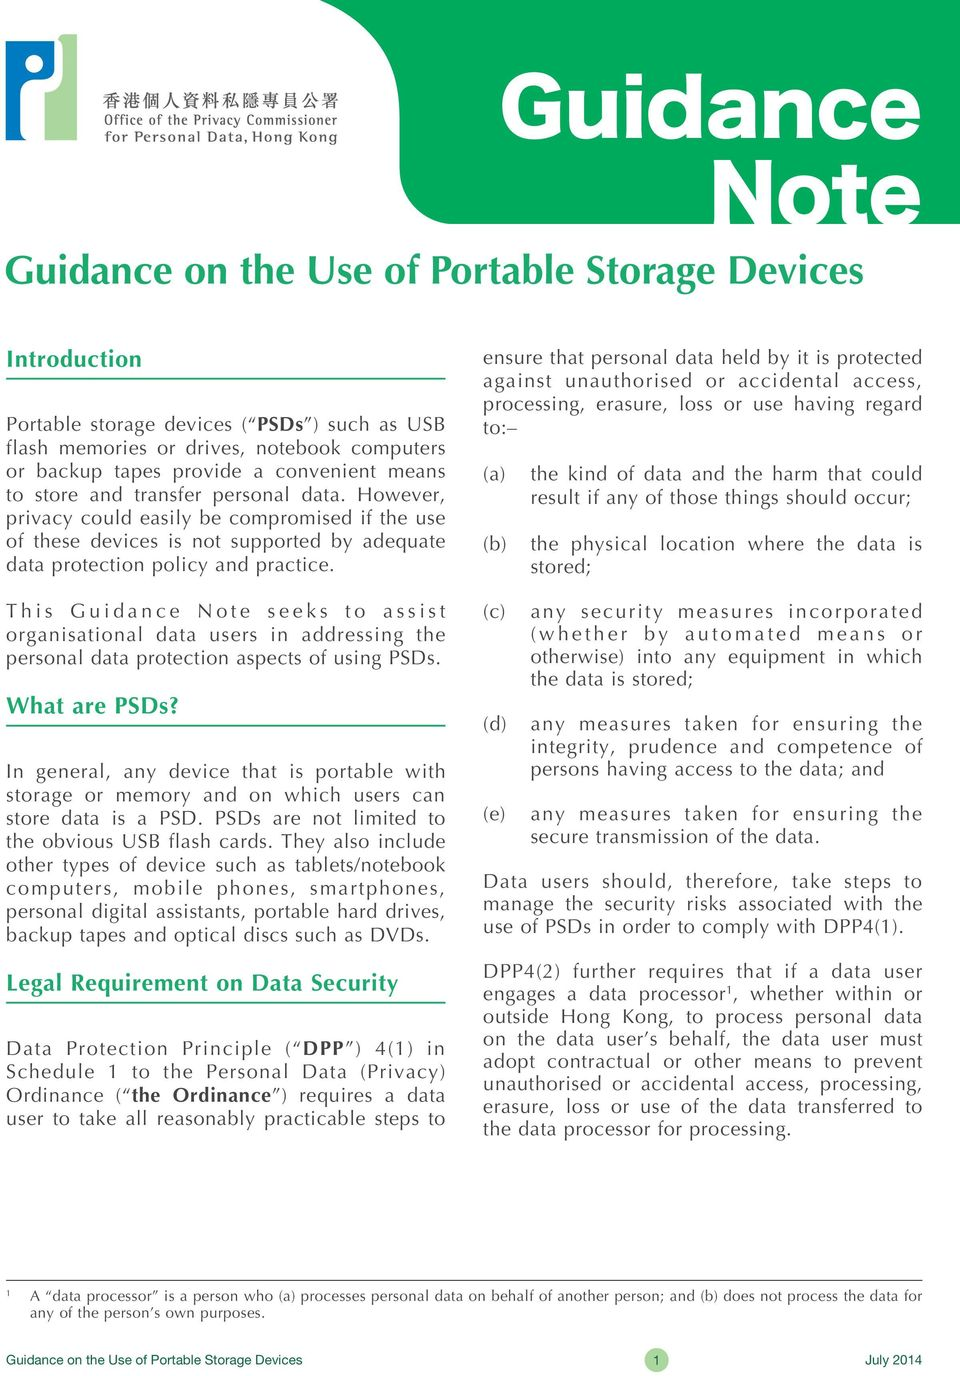 This Guidance Note seeks to assist organisational data users in addressing the personal data protection aspects of using PSDs. What are PSDs?